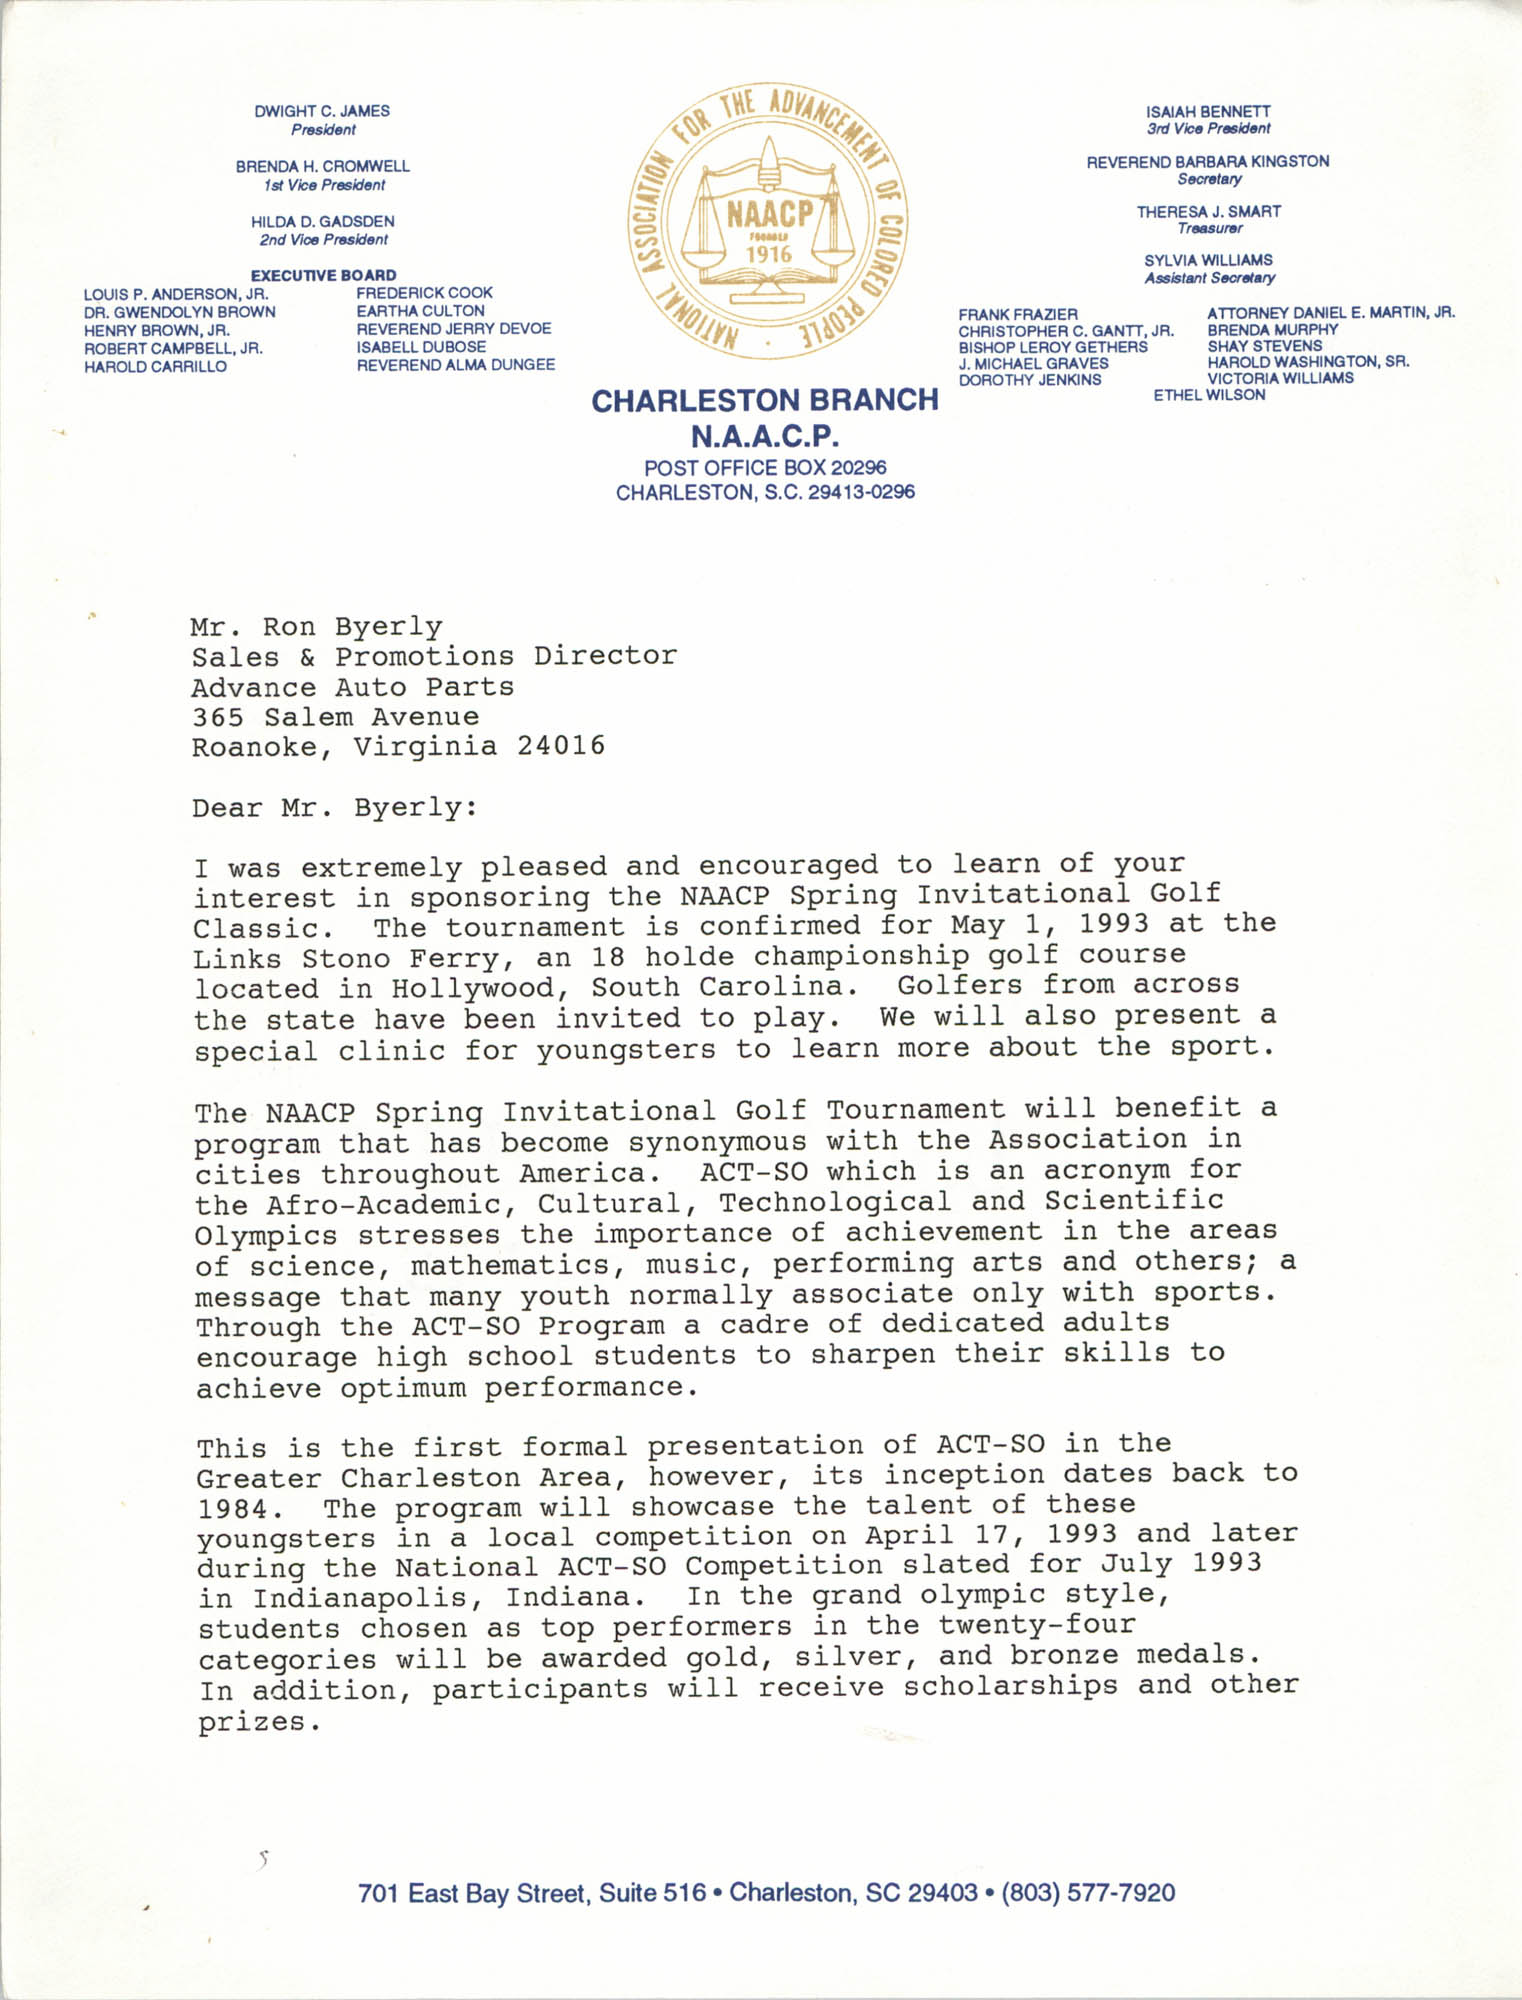 Letter from Dwight James to Ron Byerly